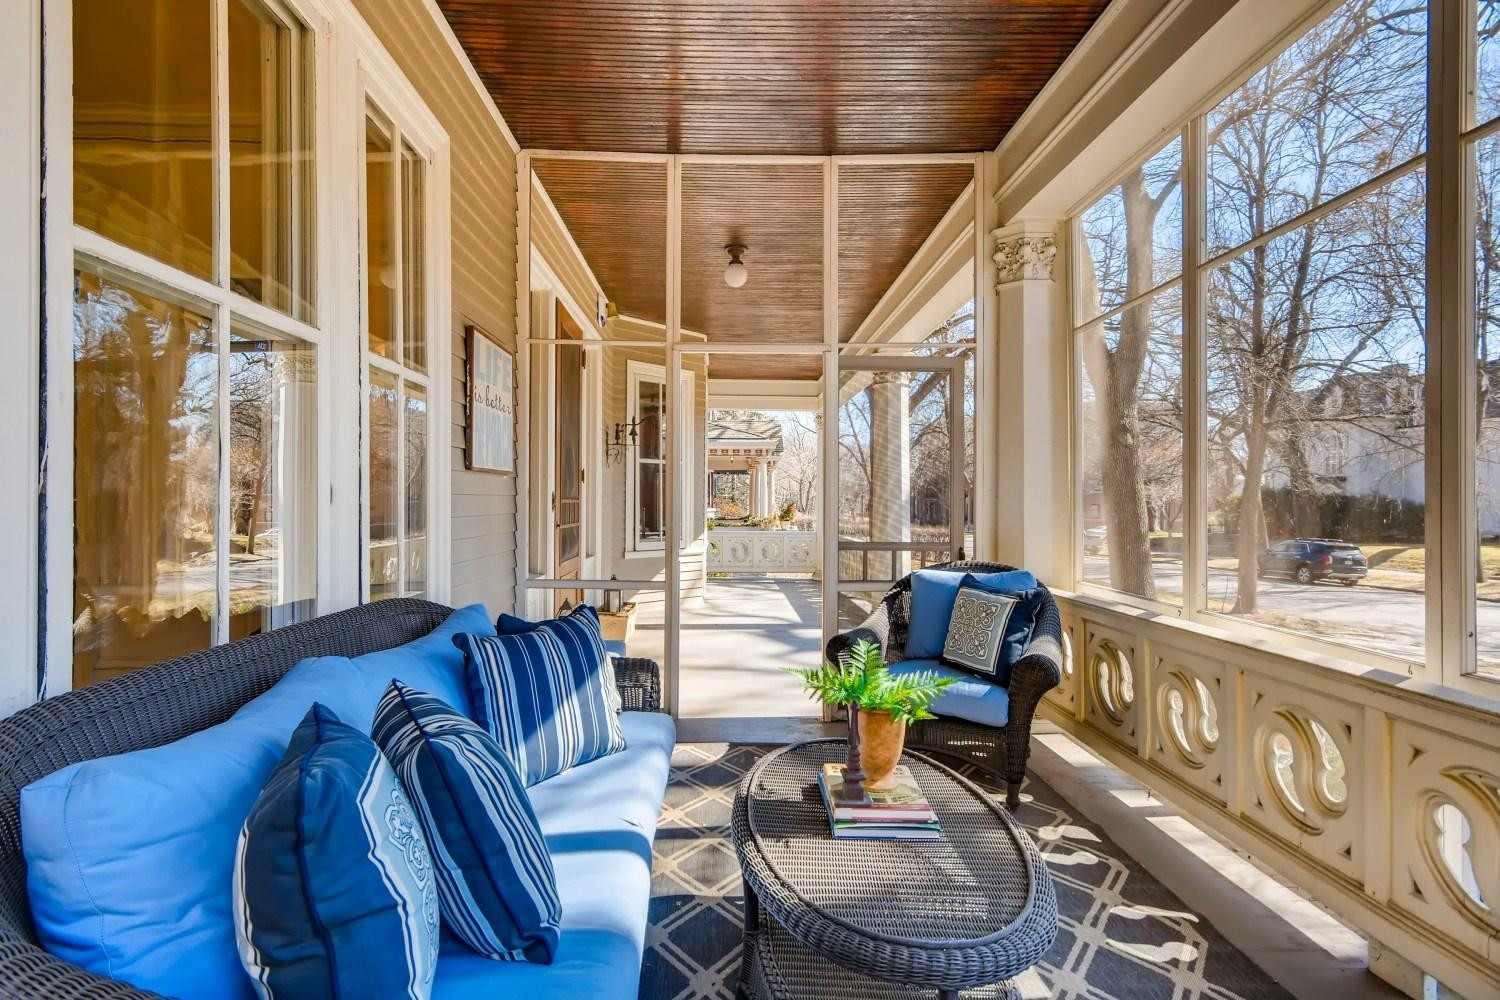 Ready to enjoy Spring from your private screened in porch?